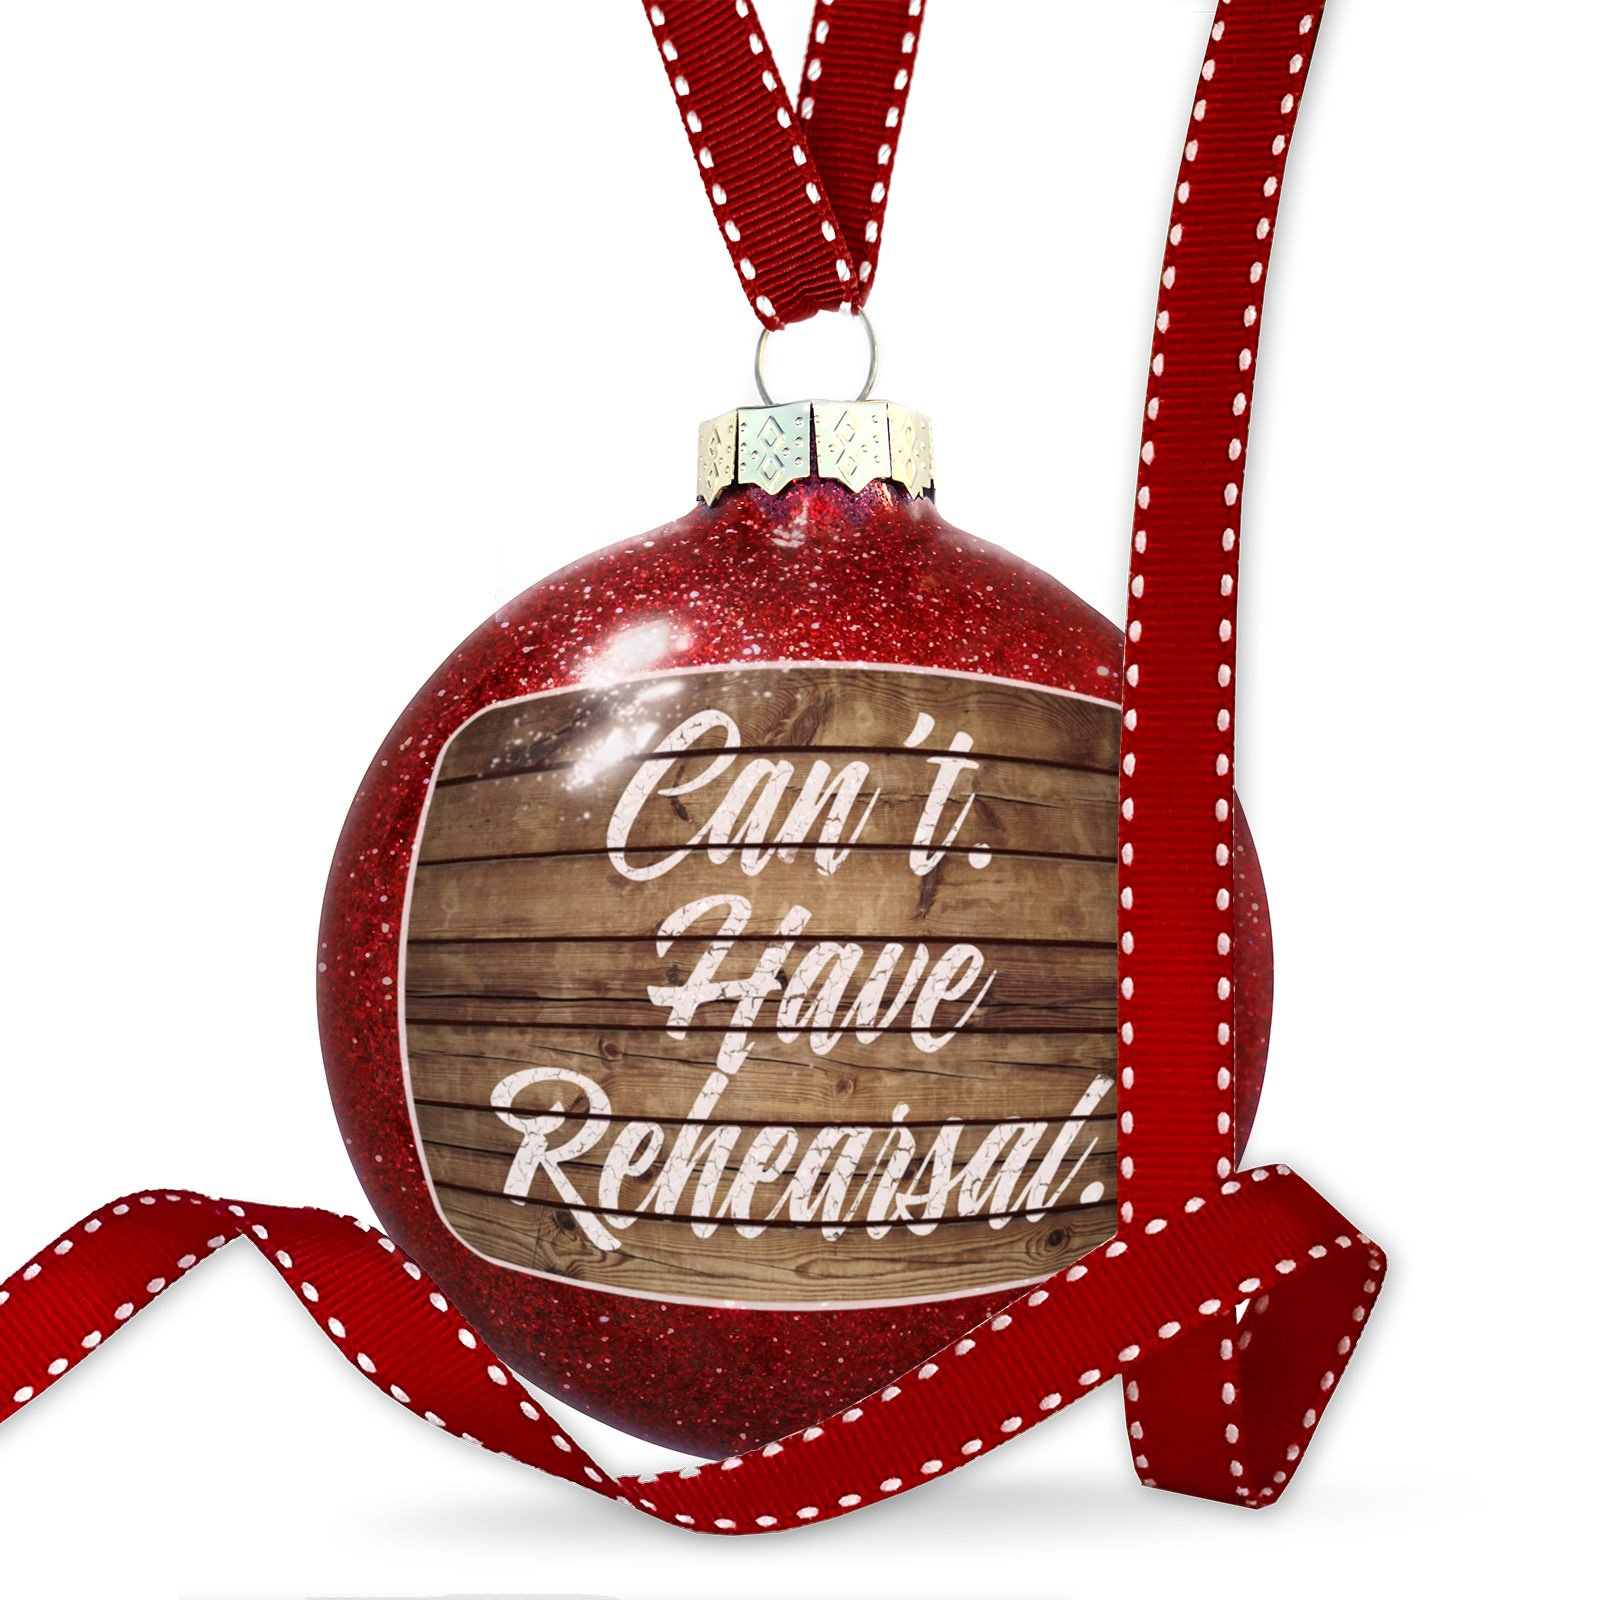 Christmas Decoration Painted Wood Can't. Have Rehearsal. Ornament